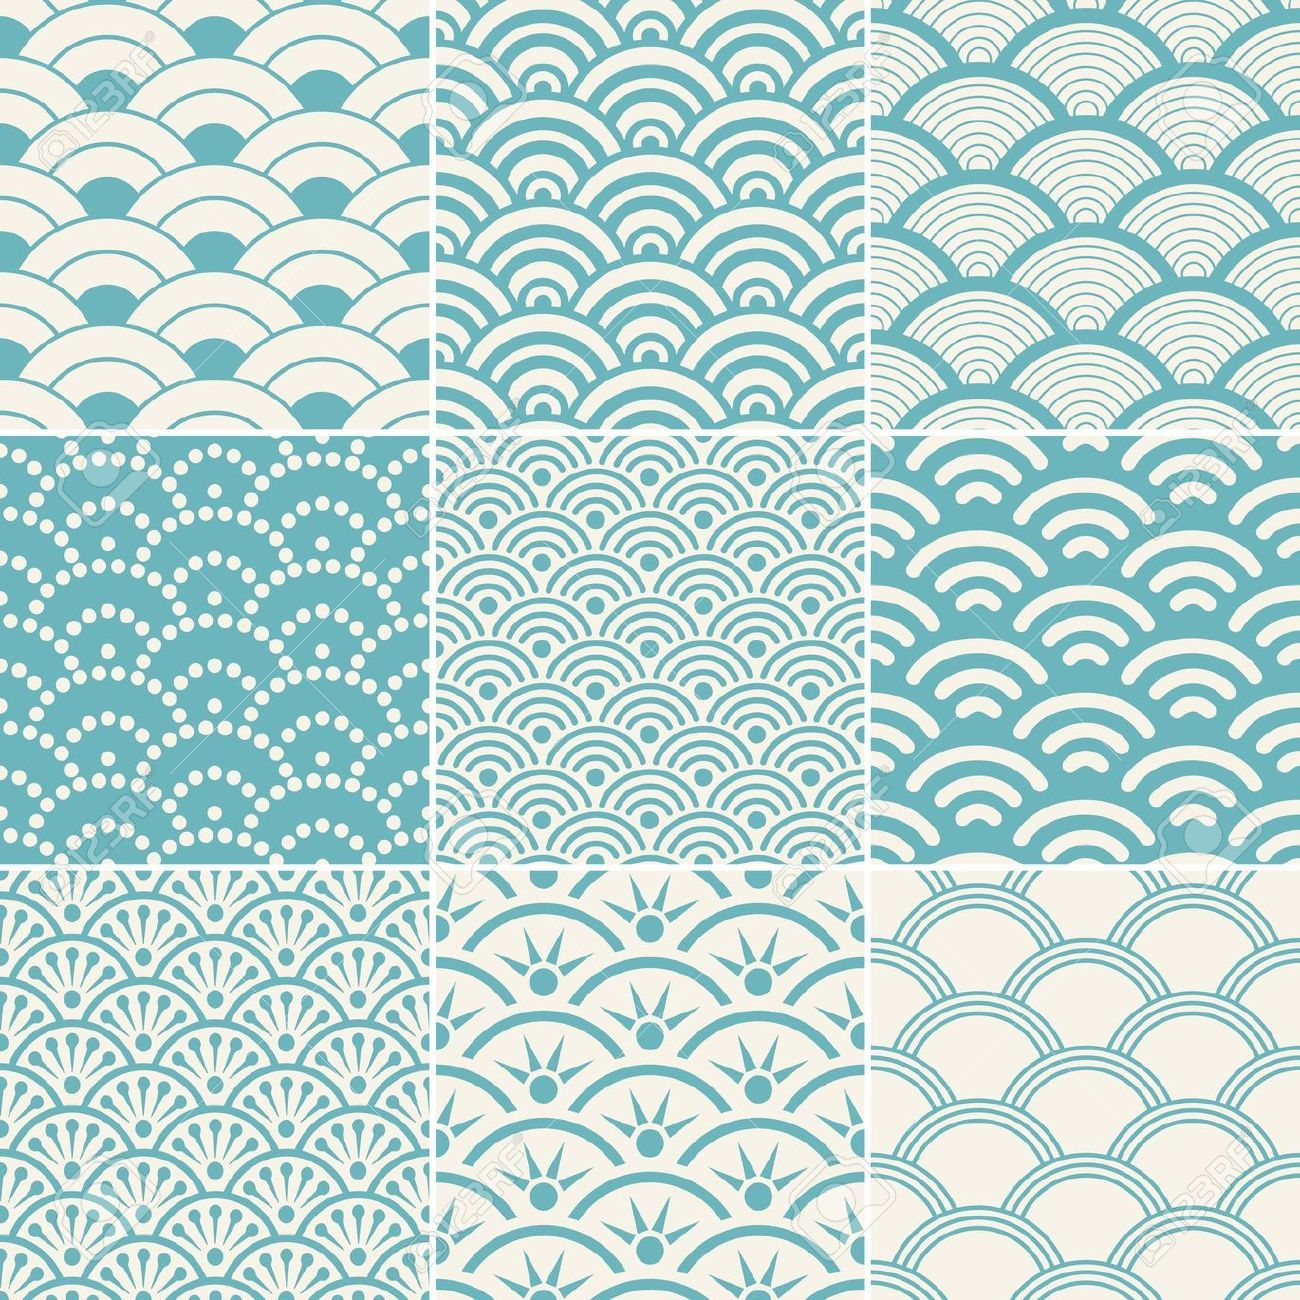 Seamless ocean wave pattern royalty free cliparts vectors - Blue ocean design ...